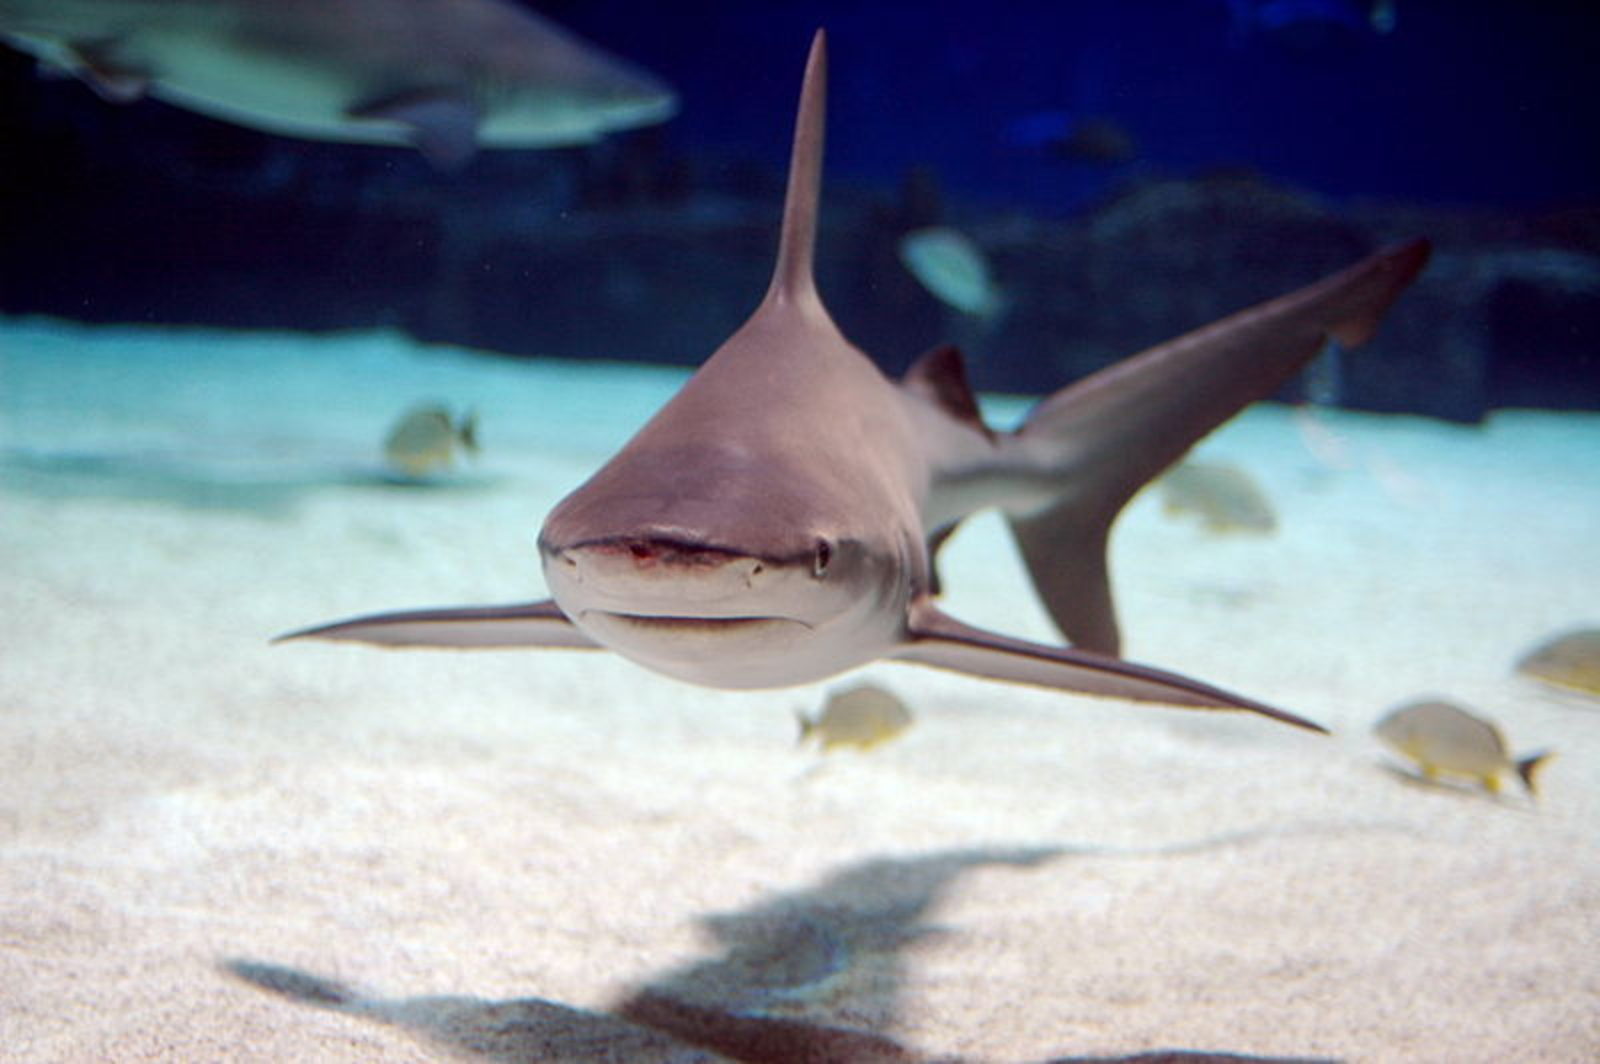 5 Time Sharks Needed Our Help and Amazing Humans Did the Right Thing